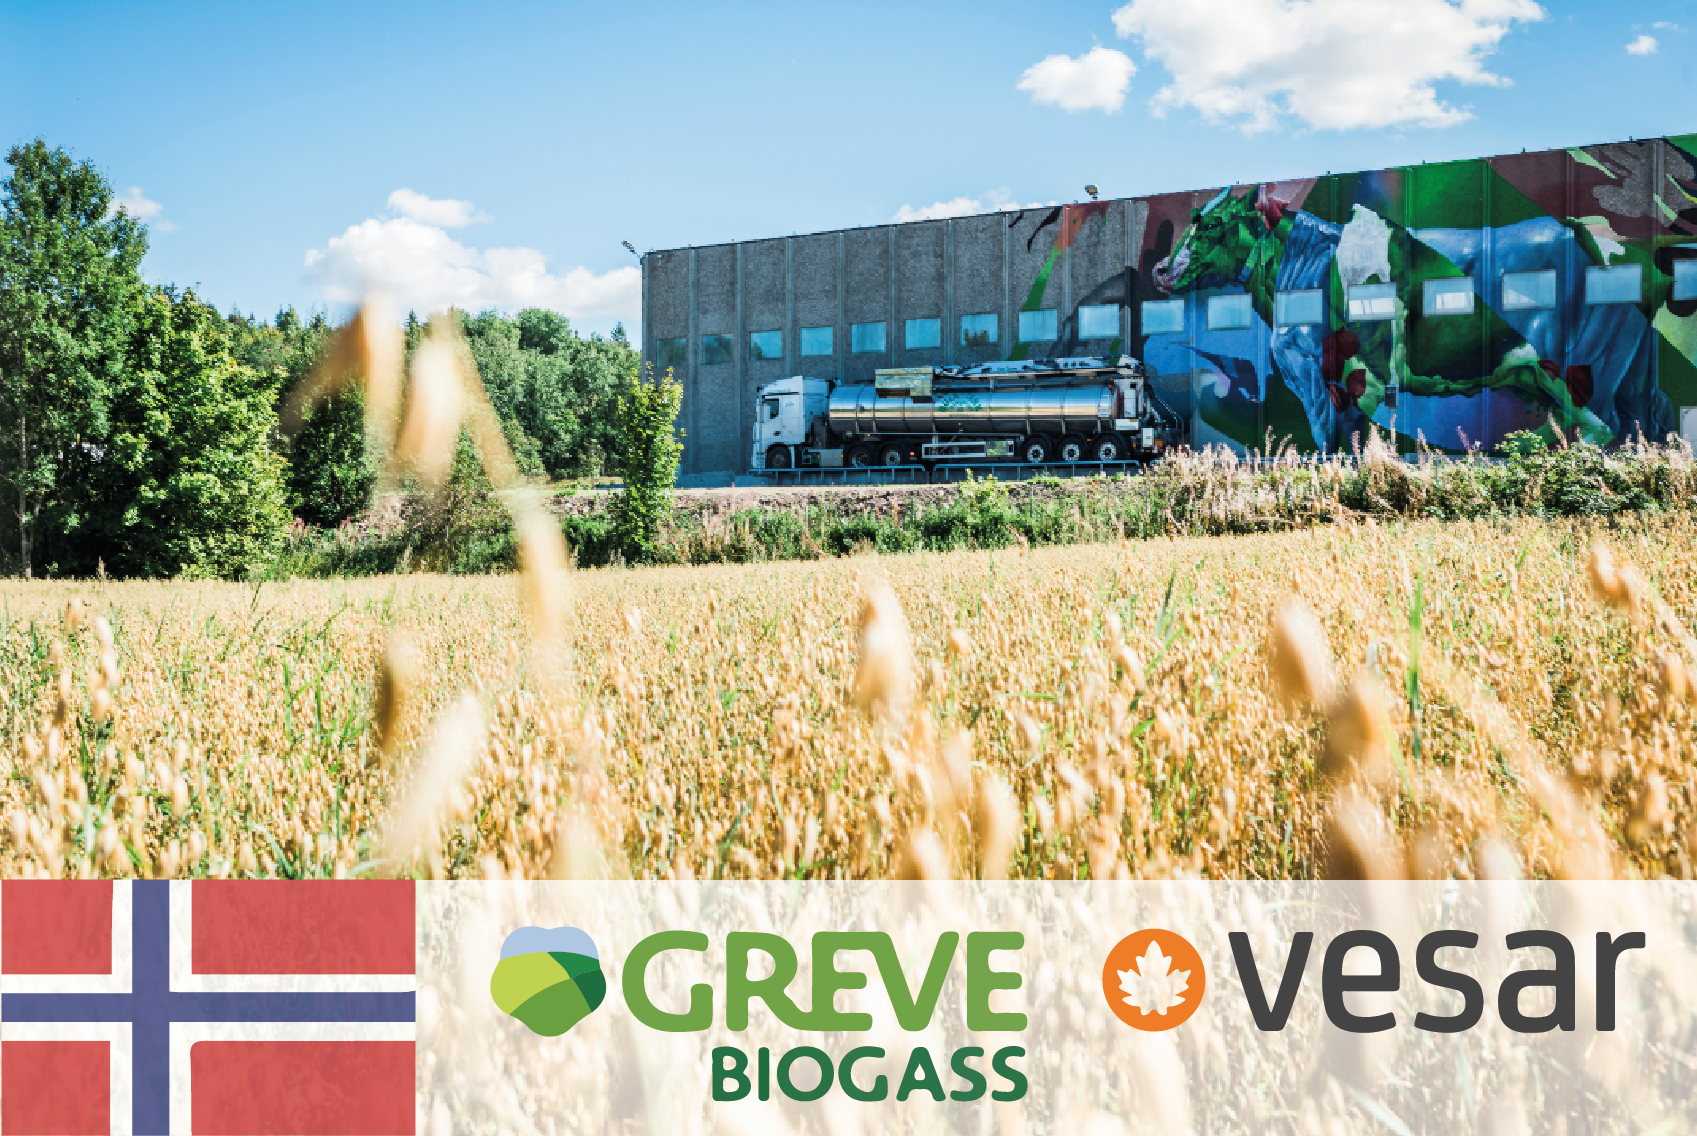 #54 Greve Biogass & Vesar – From waste to food and biogas - CIRCit Nord